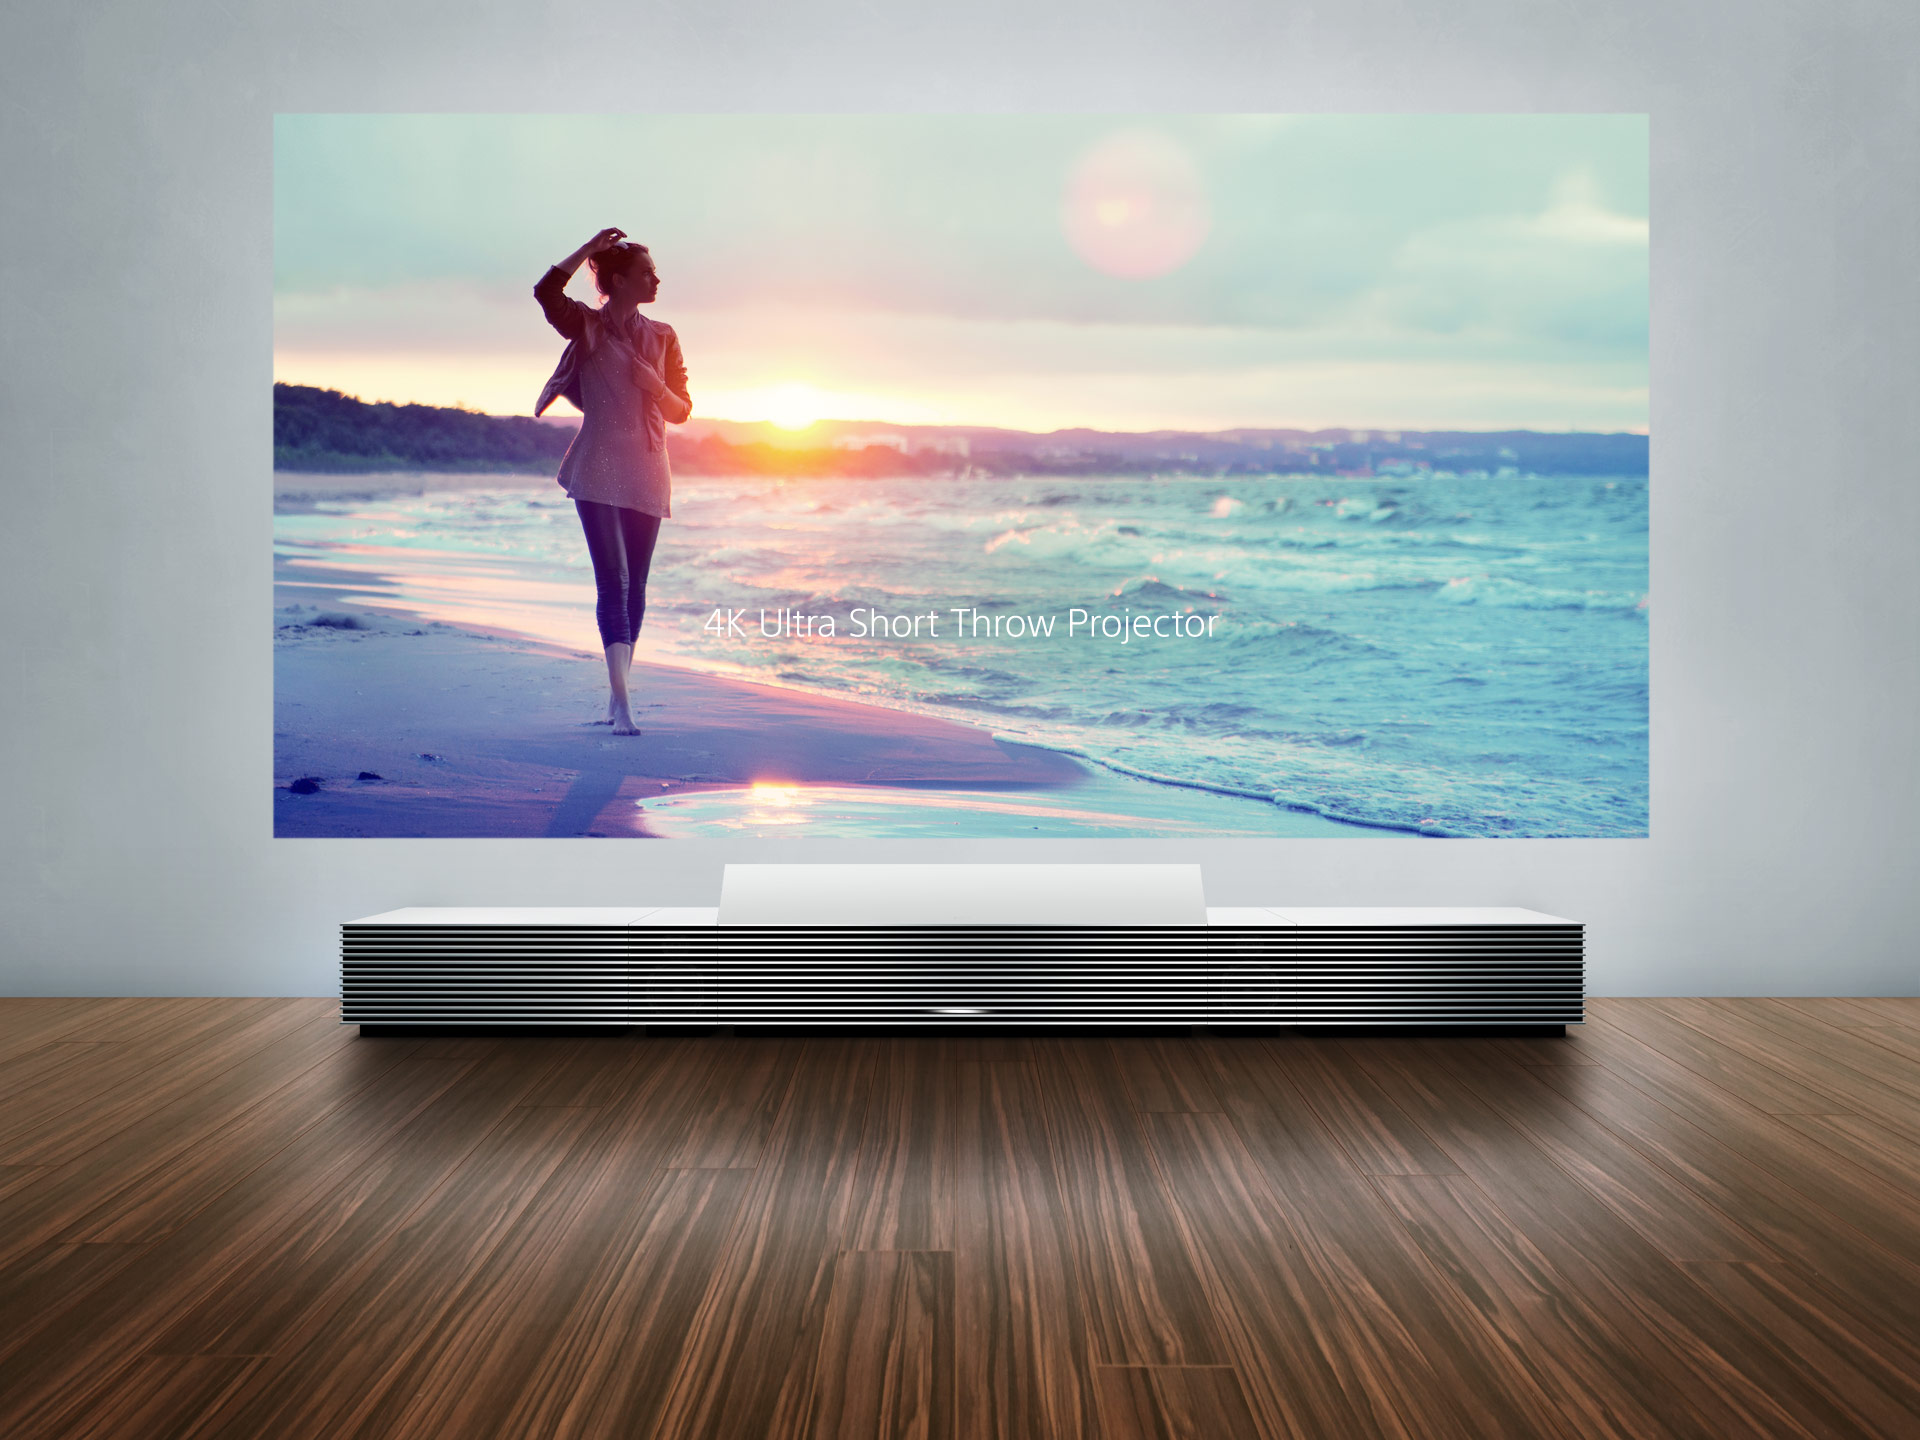 sony 4K ultra short throw projector 1